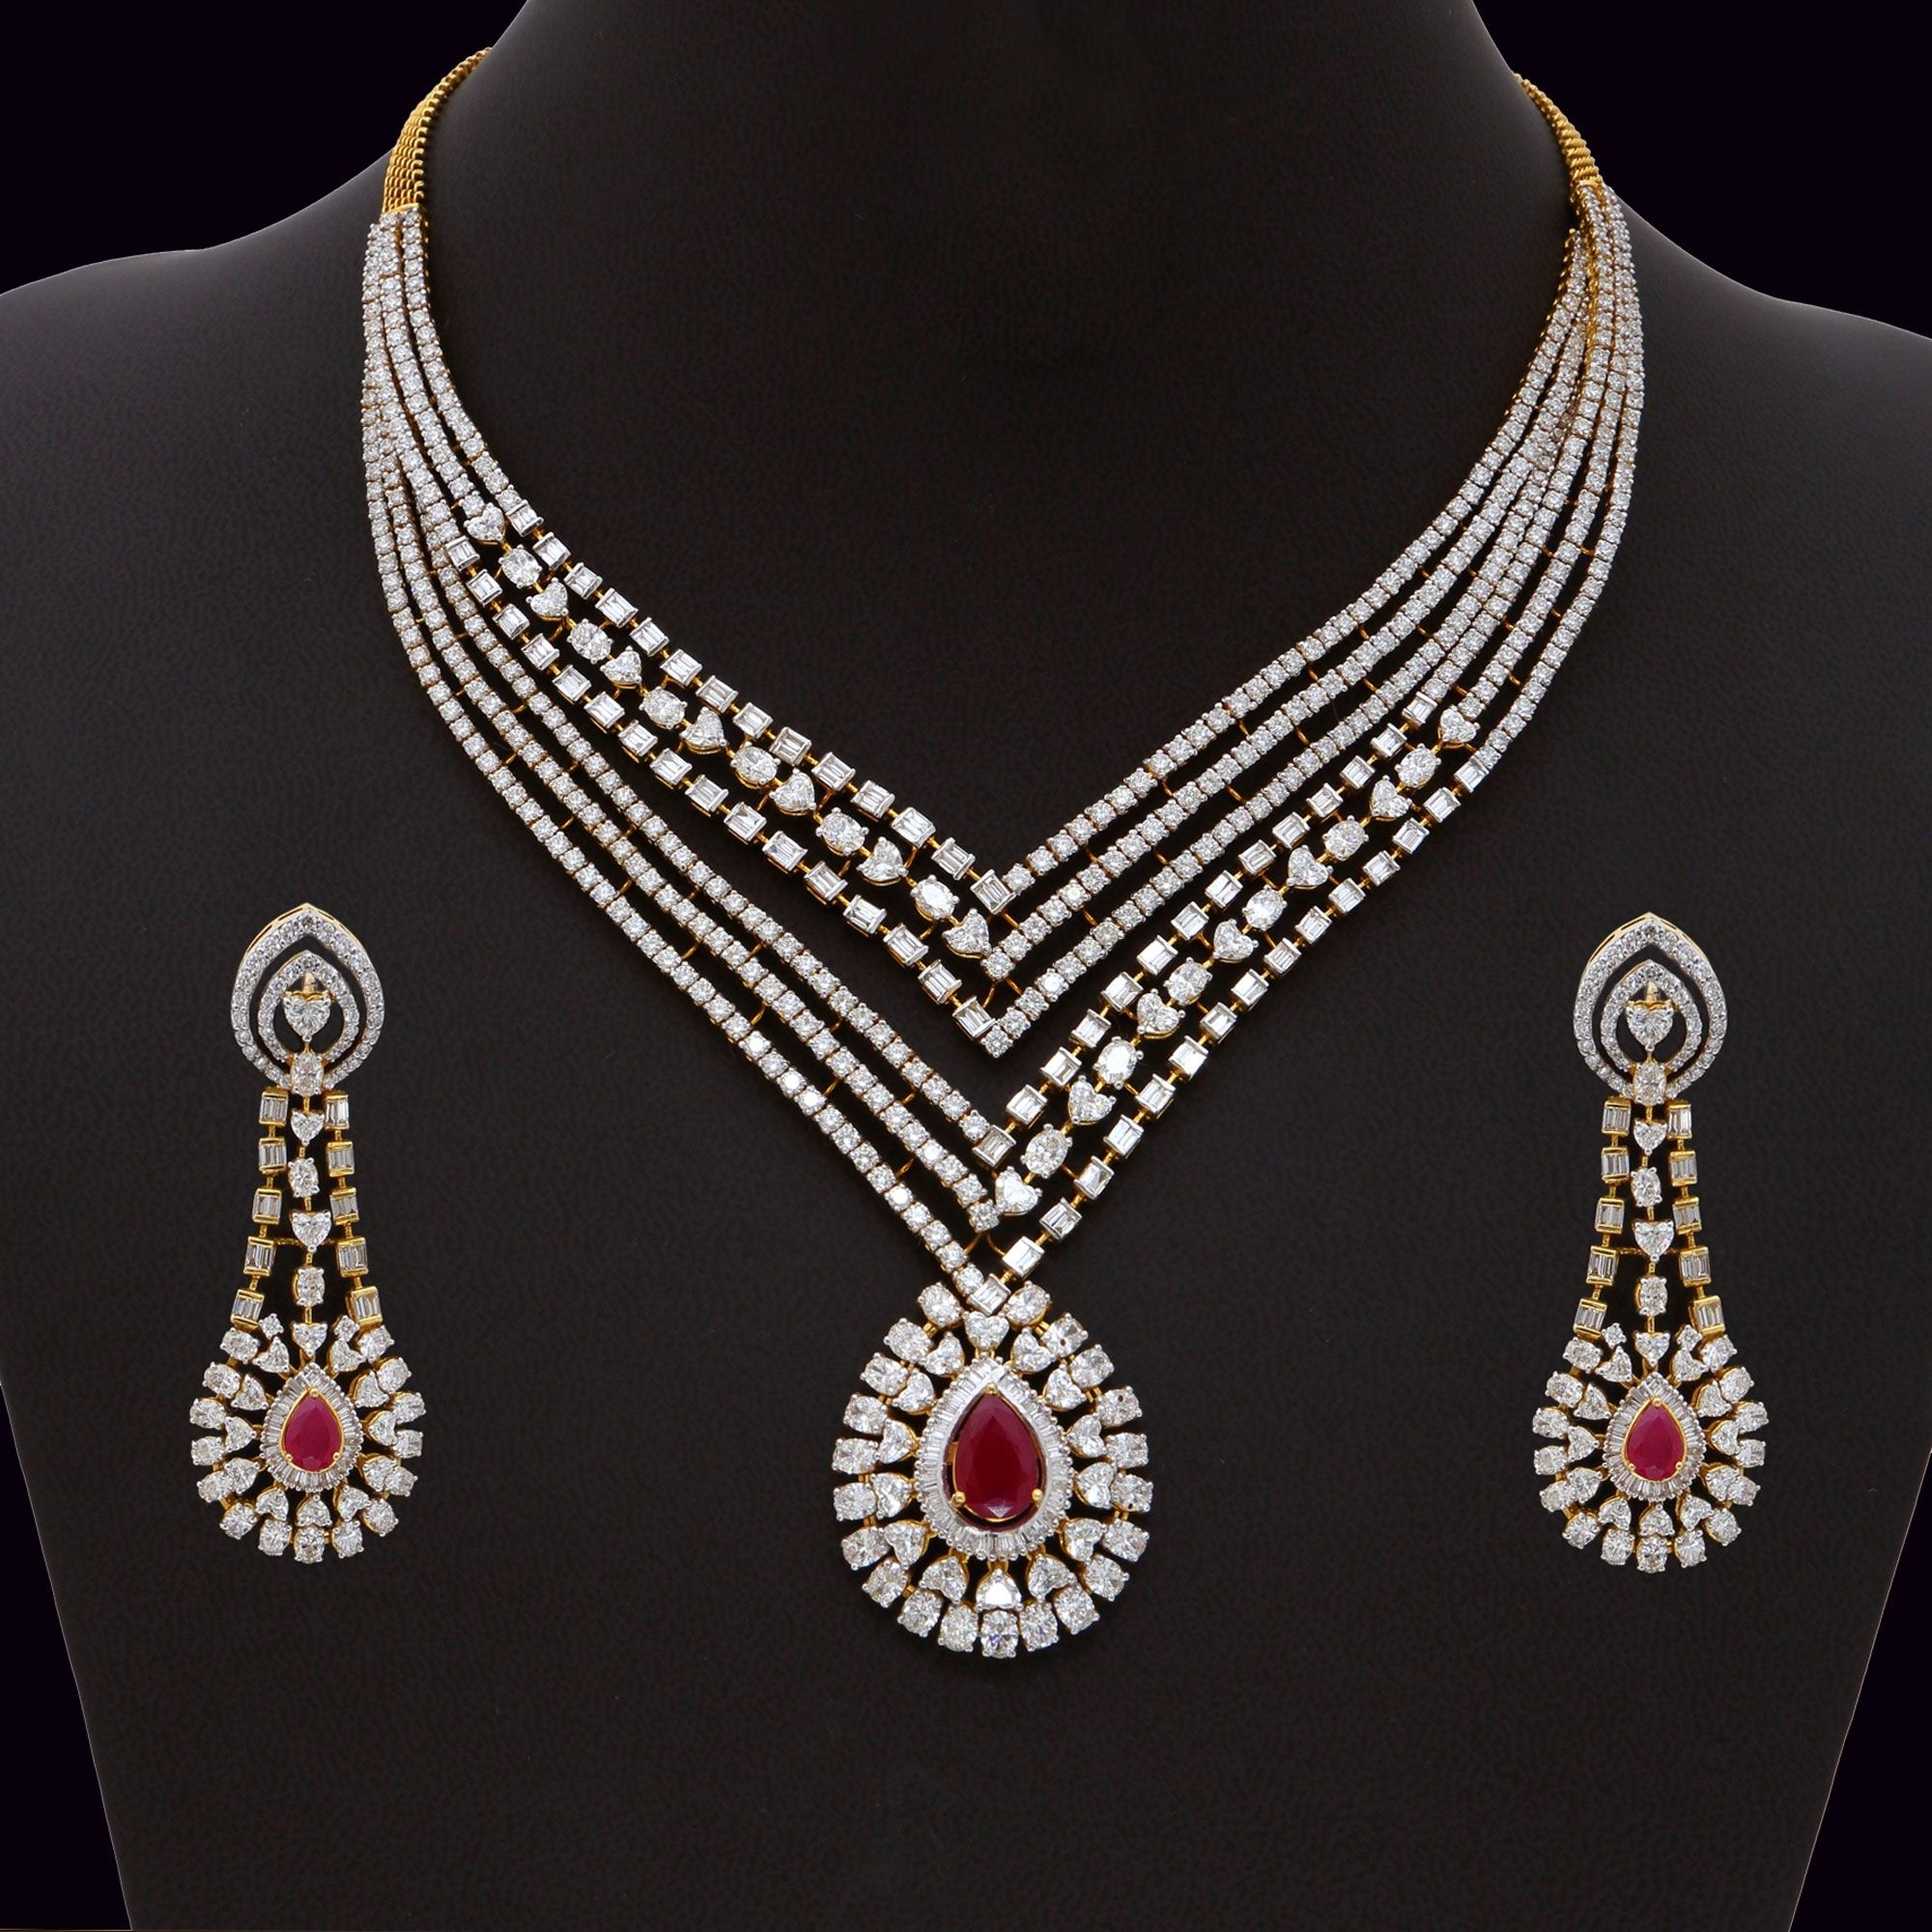 Jewelry Sets Traditional Bollywood Style Bridal Wedding Kundan Pearl Necklace Earrings Set22 Quality And Quantity Assured Fashion Jewelry